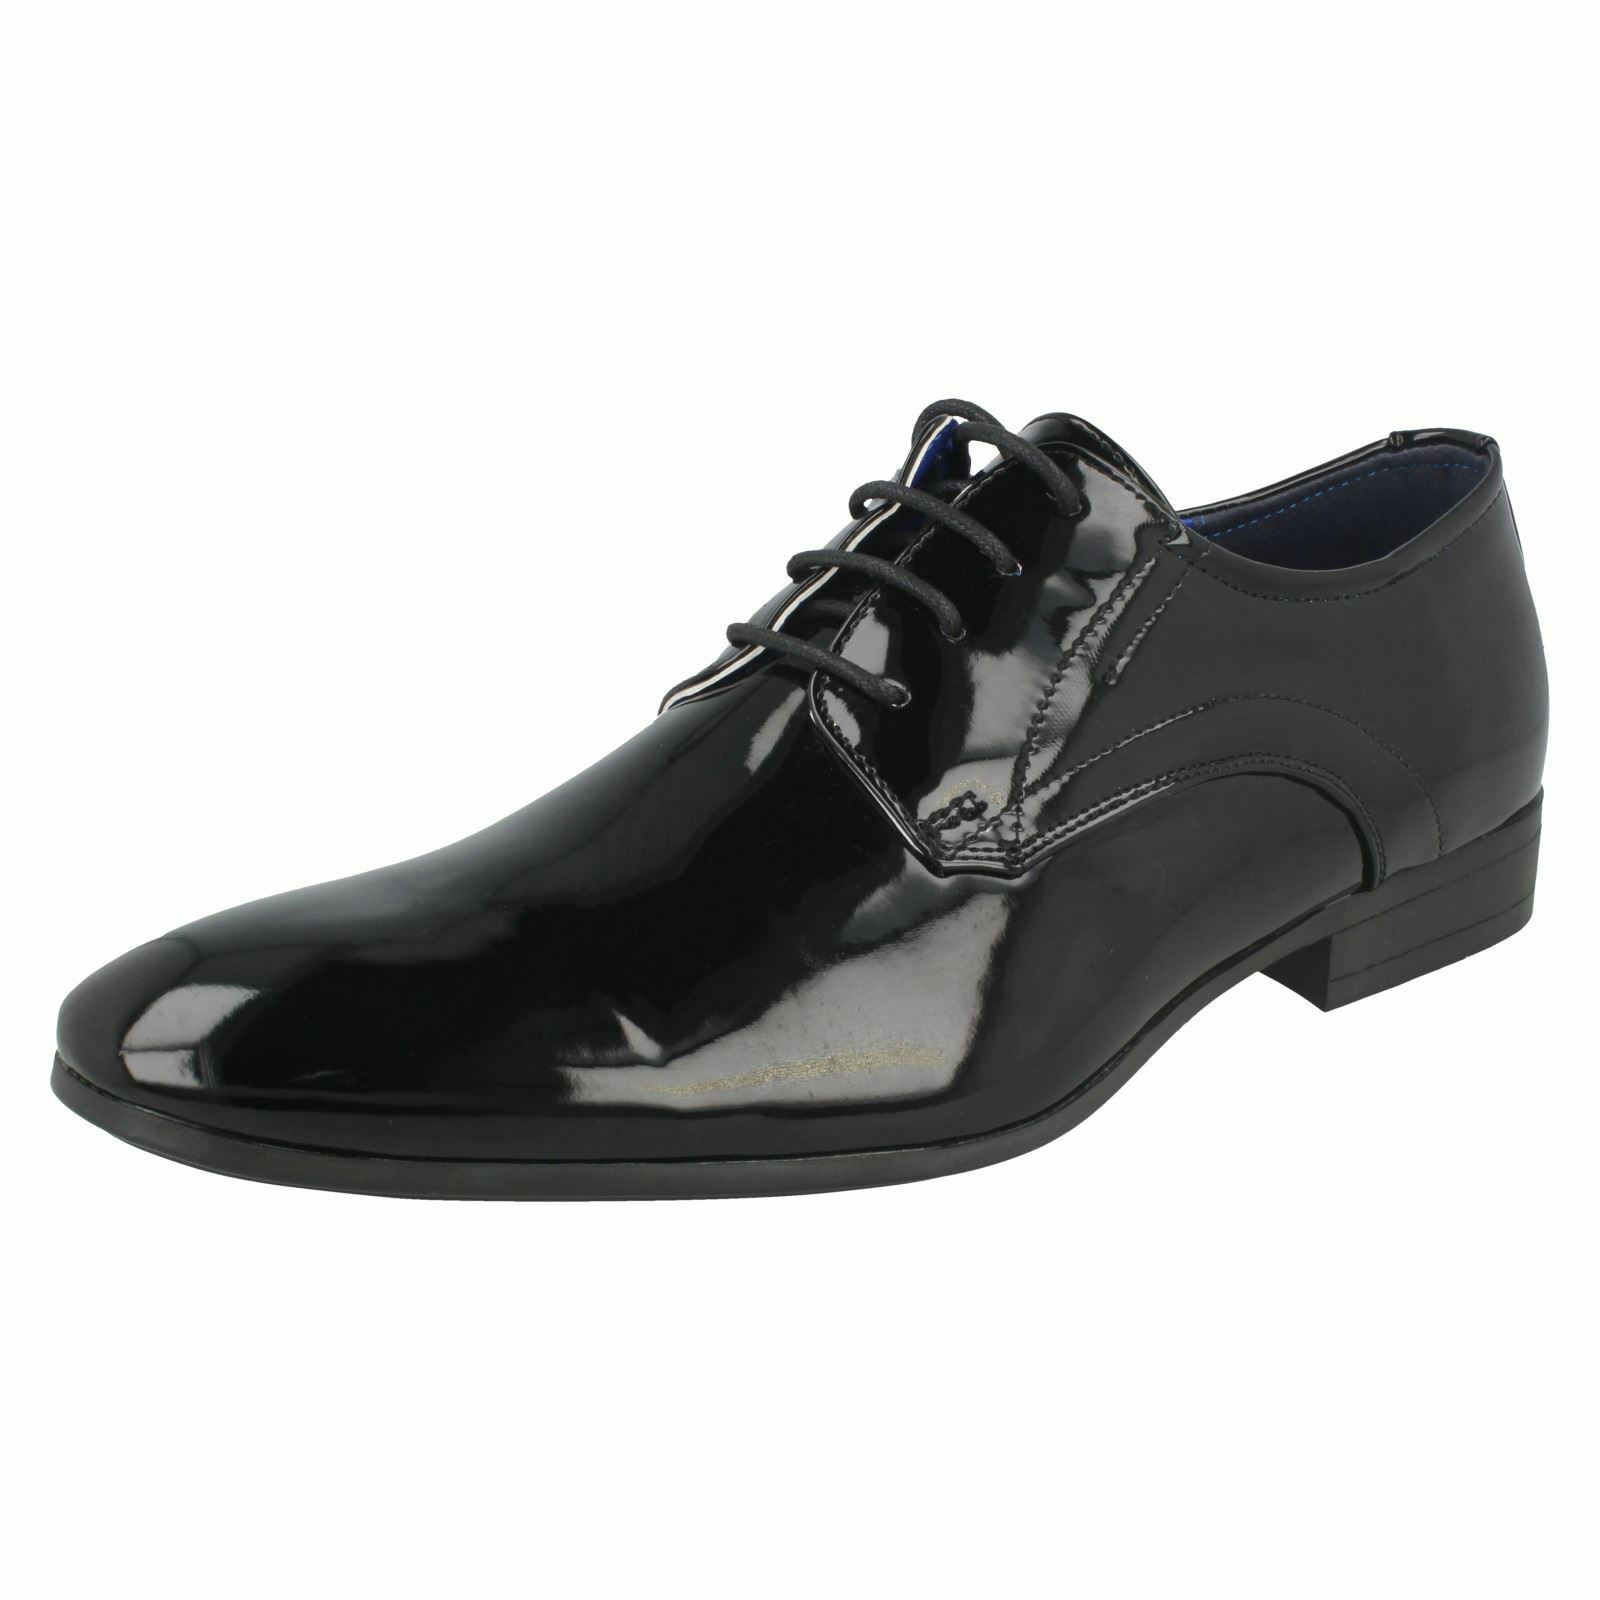 Gentlemen/Ladies Mens Malvern Occasion price Wear Smart 'Shoes' Reasonable price Occasion Stylish and charming Full range of specifications 0e09c2